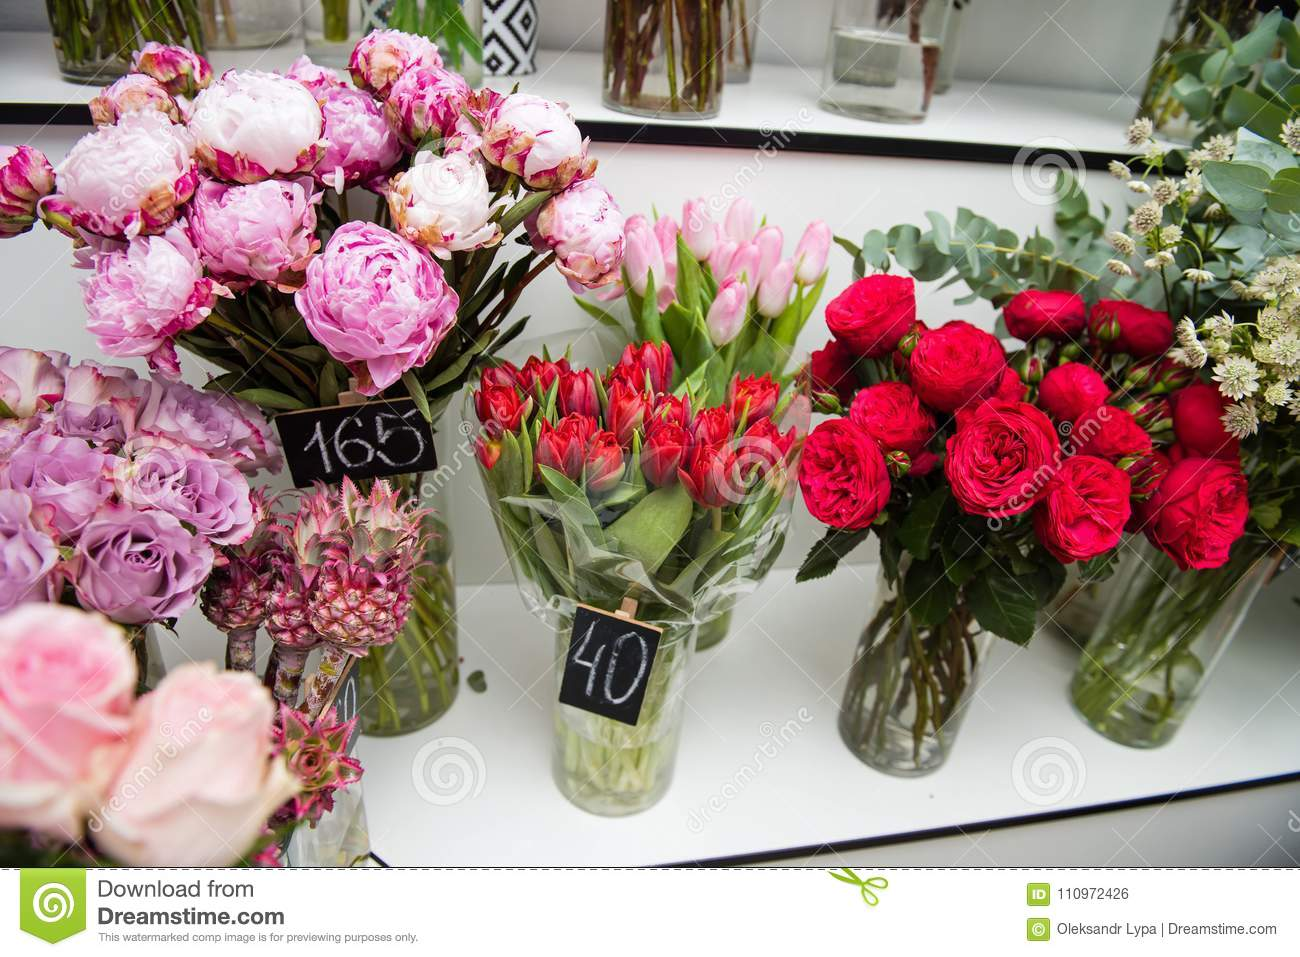 Colorful Flowers In Vases At Store Indoors Stock Photo - Image of ...